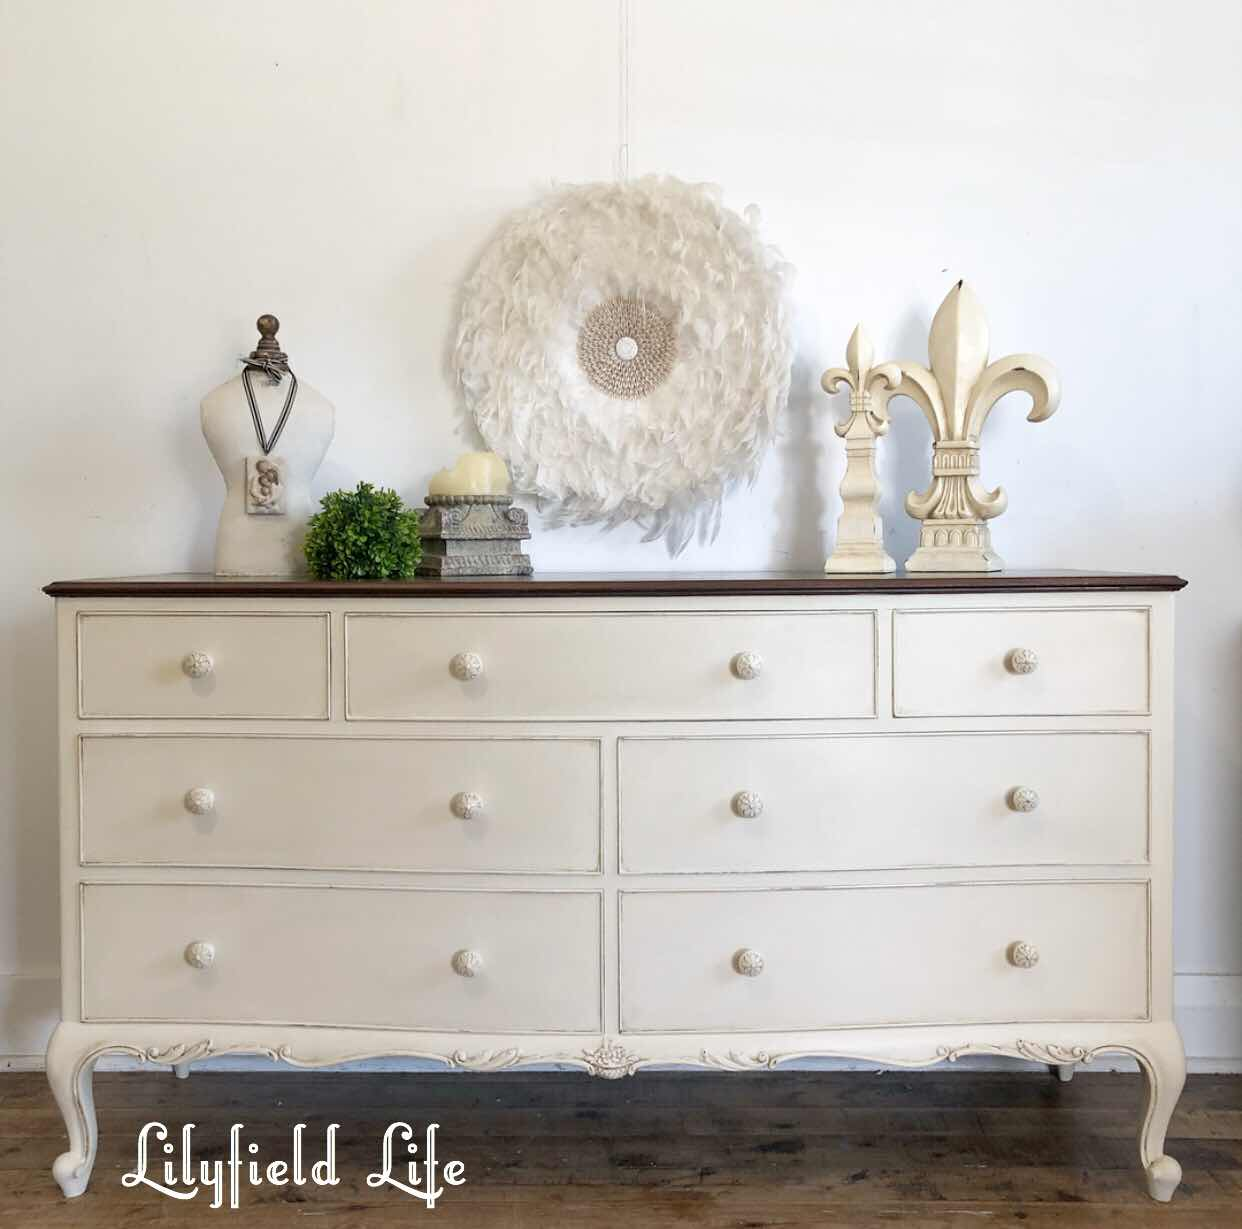 Lilyfield life chest of drawers hand painted